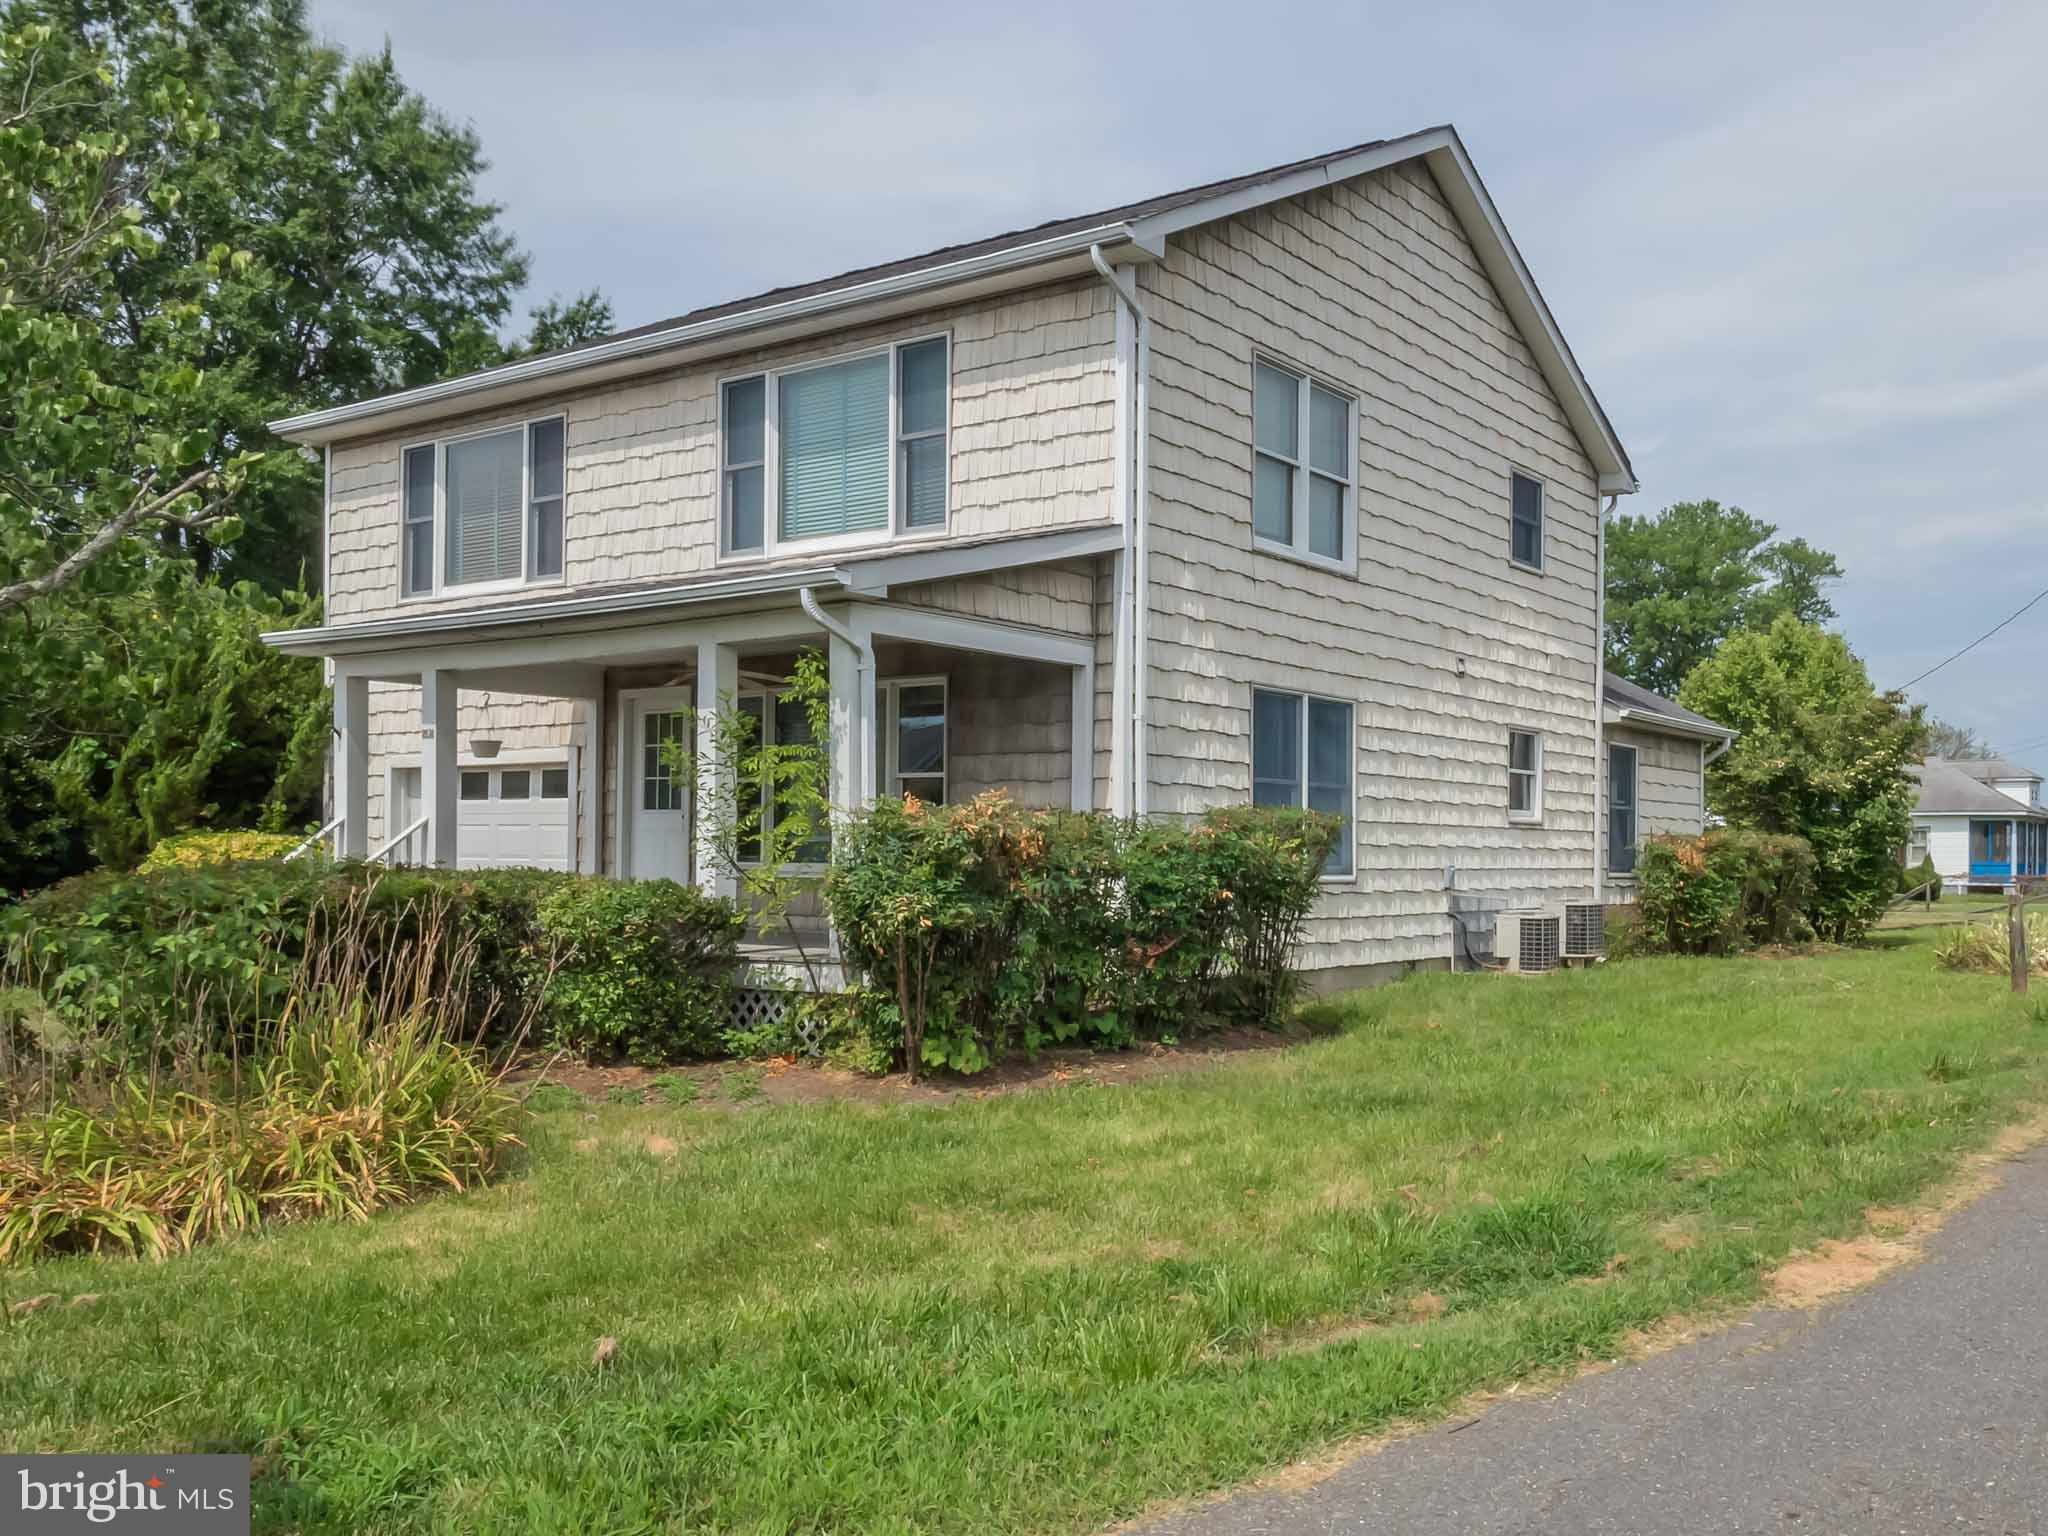 3935 OYSTER HOUSE ROAD, BROOMES ISLAND, MD 20615